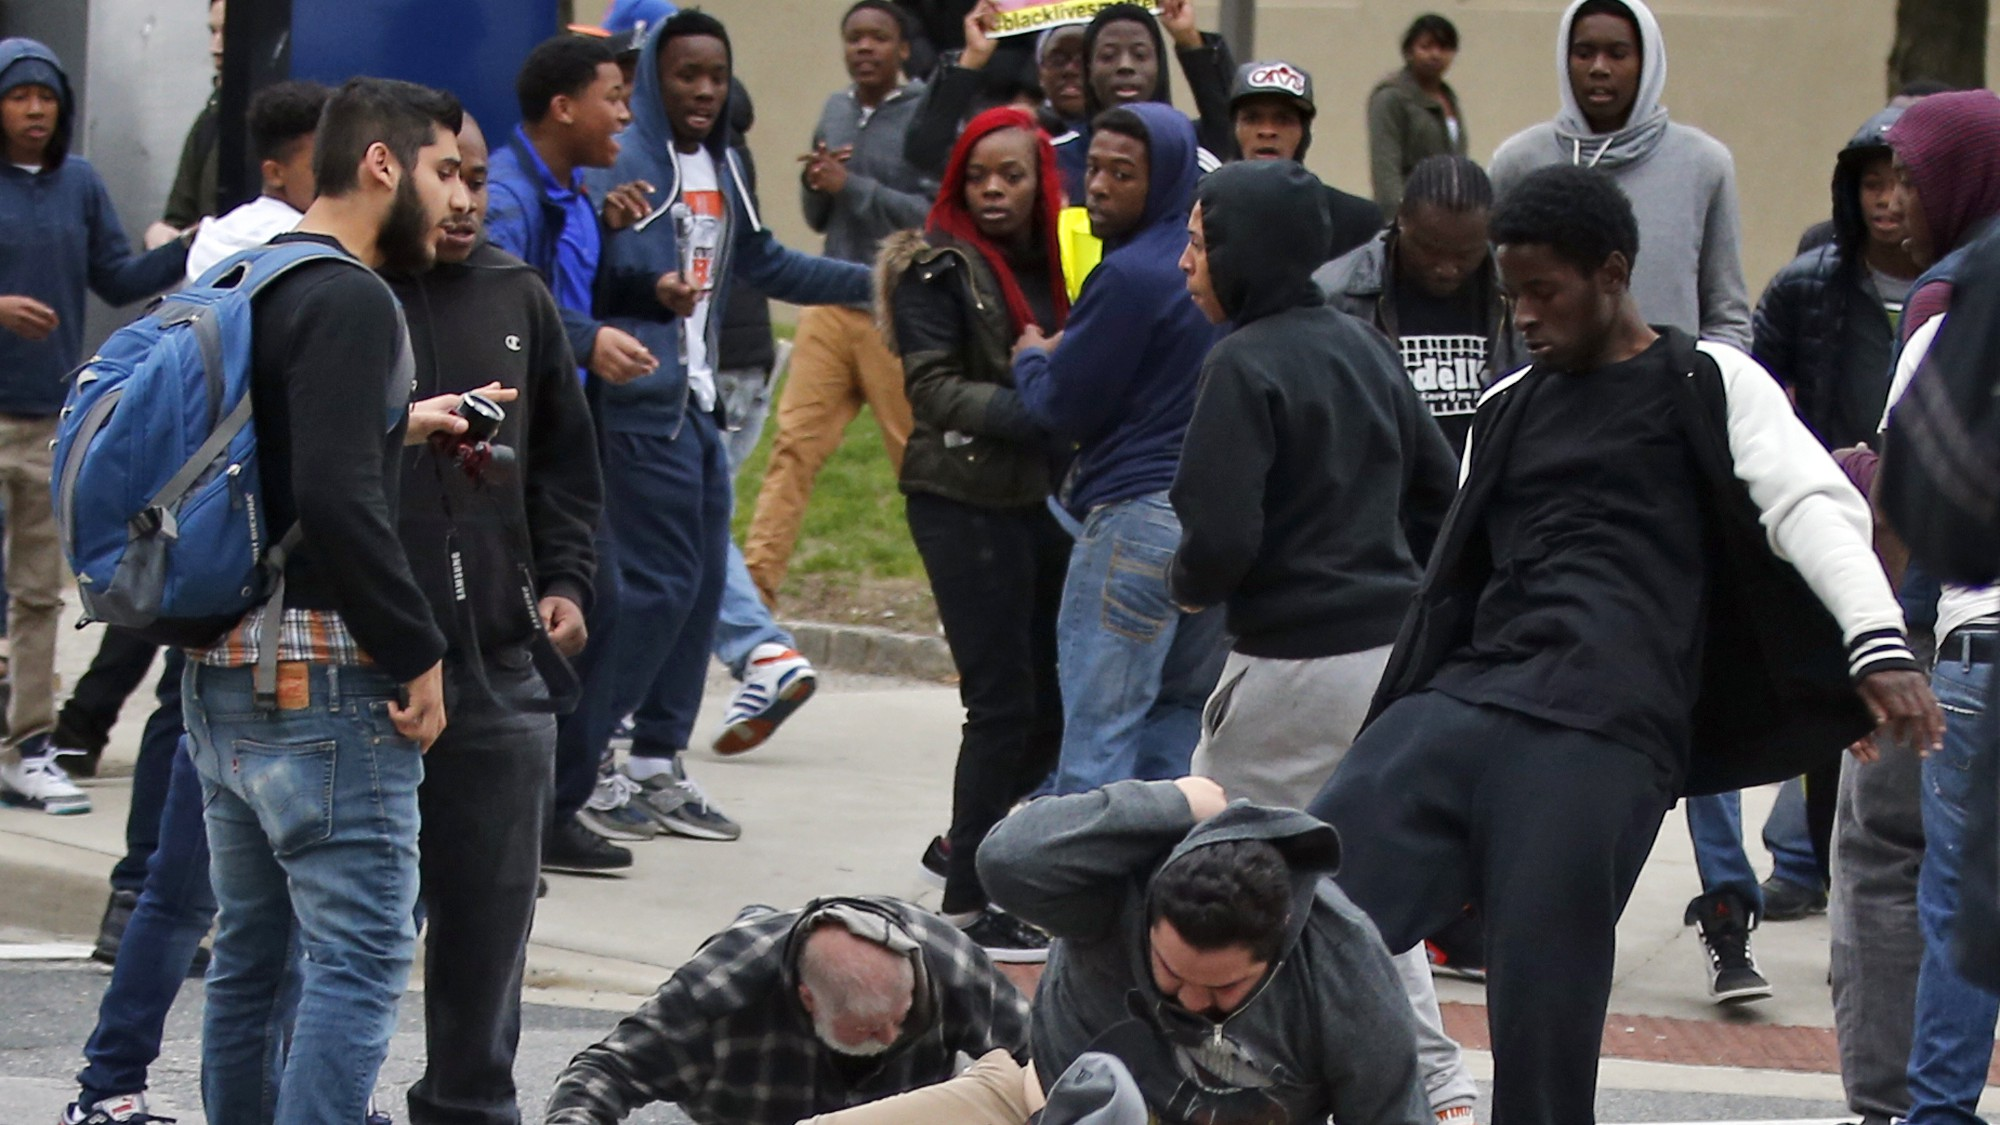 A man is kicked as he attempts to get up after being knocked down, following a march to City Hall for Freddie Gray, Saturday, April 25, 2015 in Baltimore.